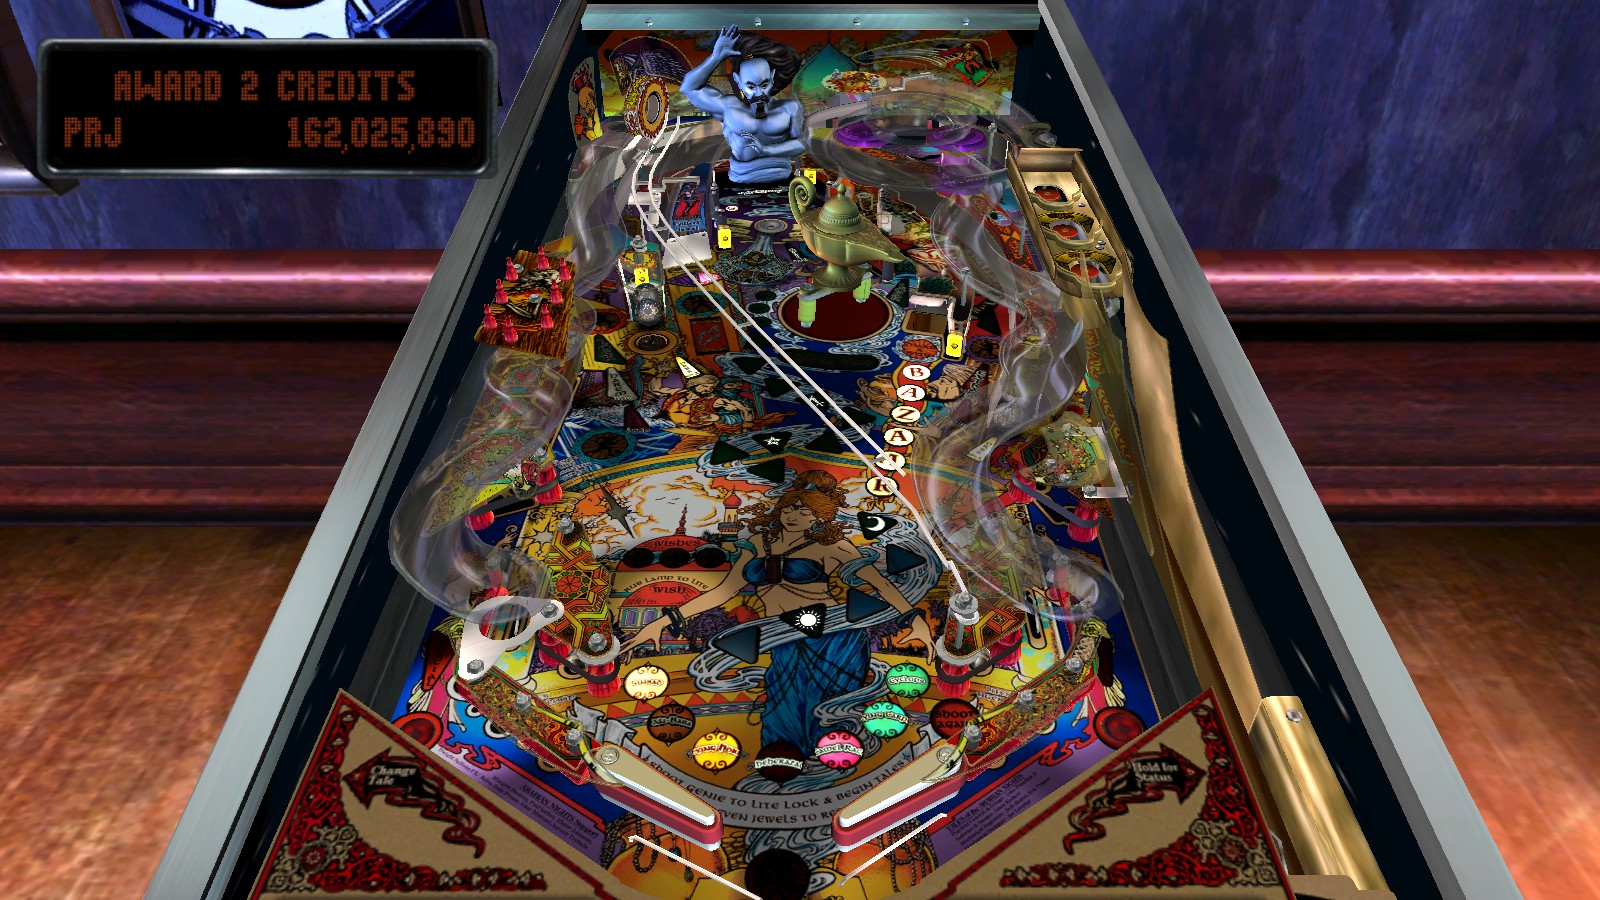 Deteacher: Pinball Arcade: Tales of the Arabian Nights [3 balls] (PC) 162,025,890 points on 2015-08-15 14:05:04